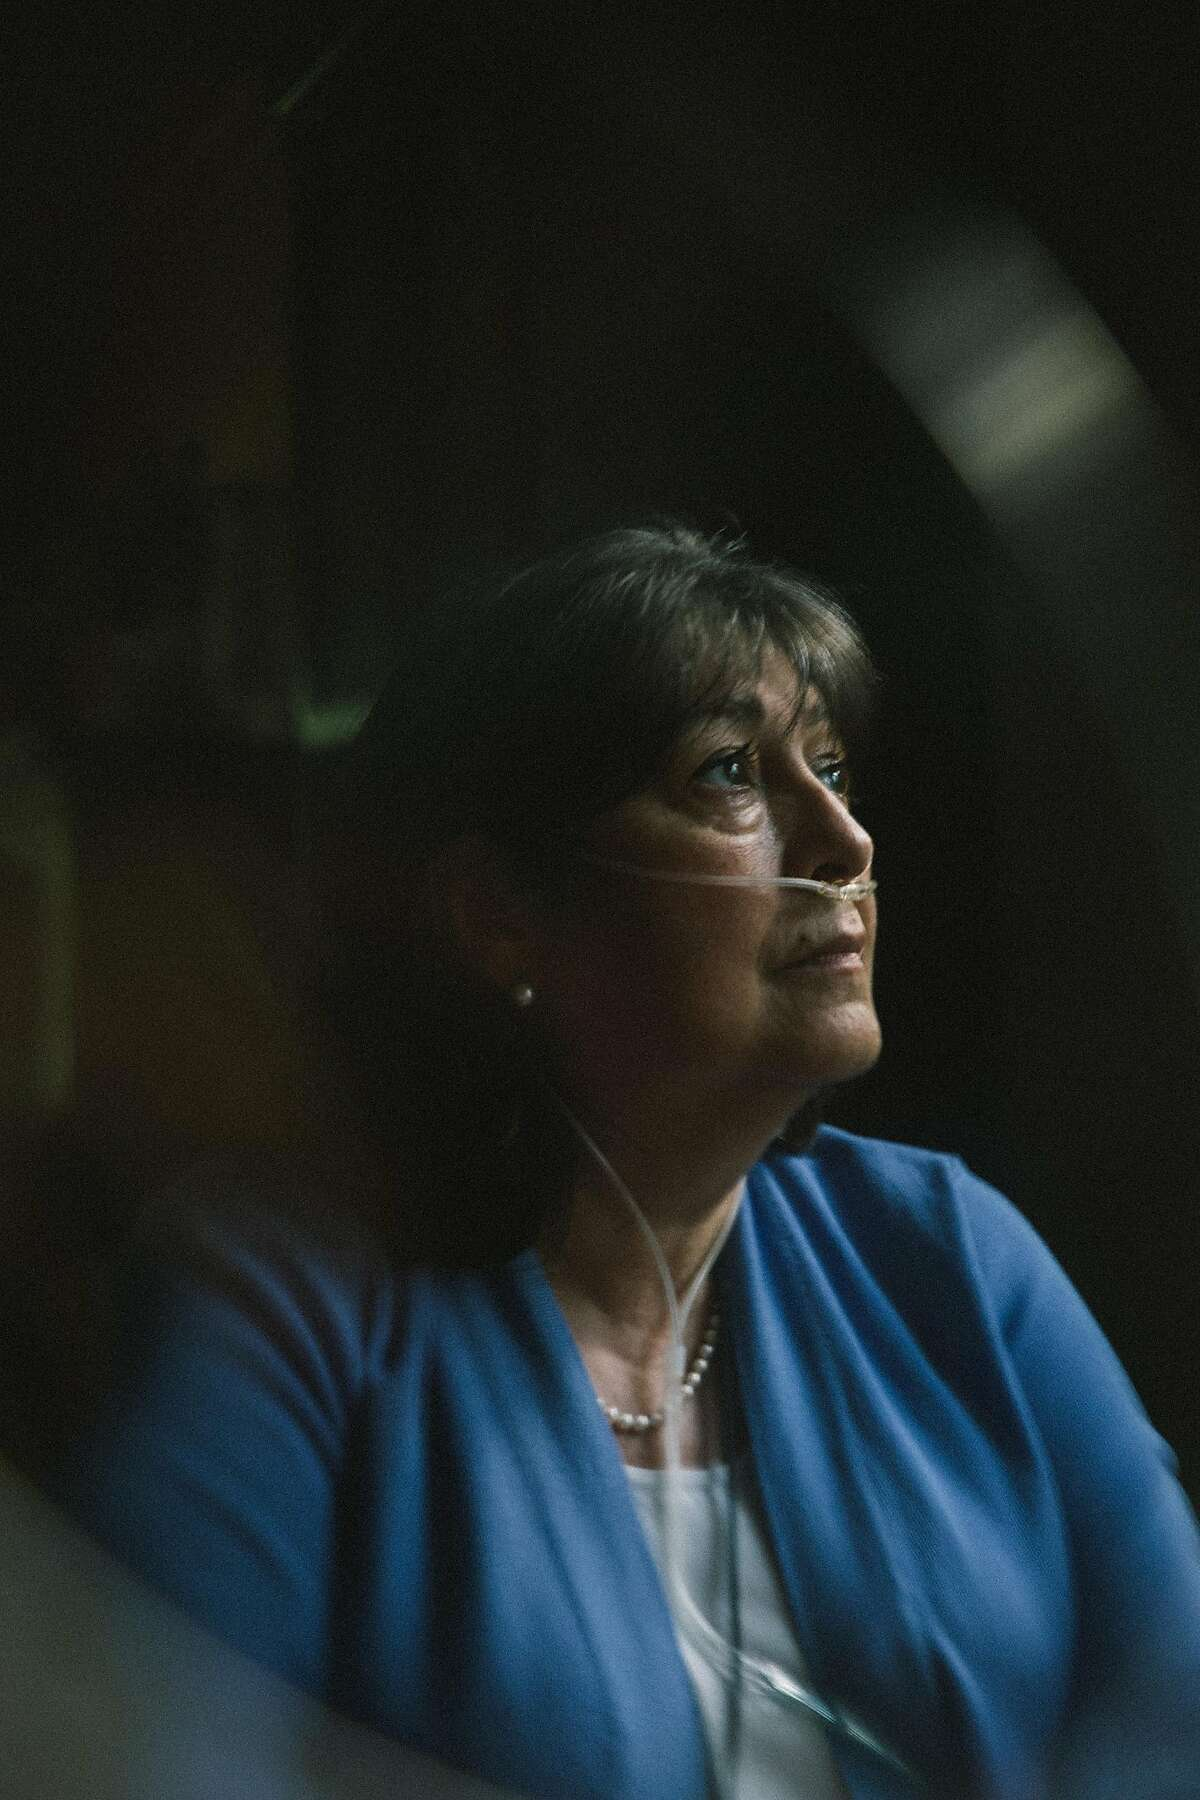 Manuella Fehertoi, who has been unable to work her banking job and now needs oxygen around the clock, at her home in Middletown, N.J., Sept. 1, 2020. With 7 million known cases of the coronavirus across the country, more people are suffering from symptoms that go on and on. (Celeste Sloman/The New York Times)